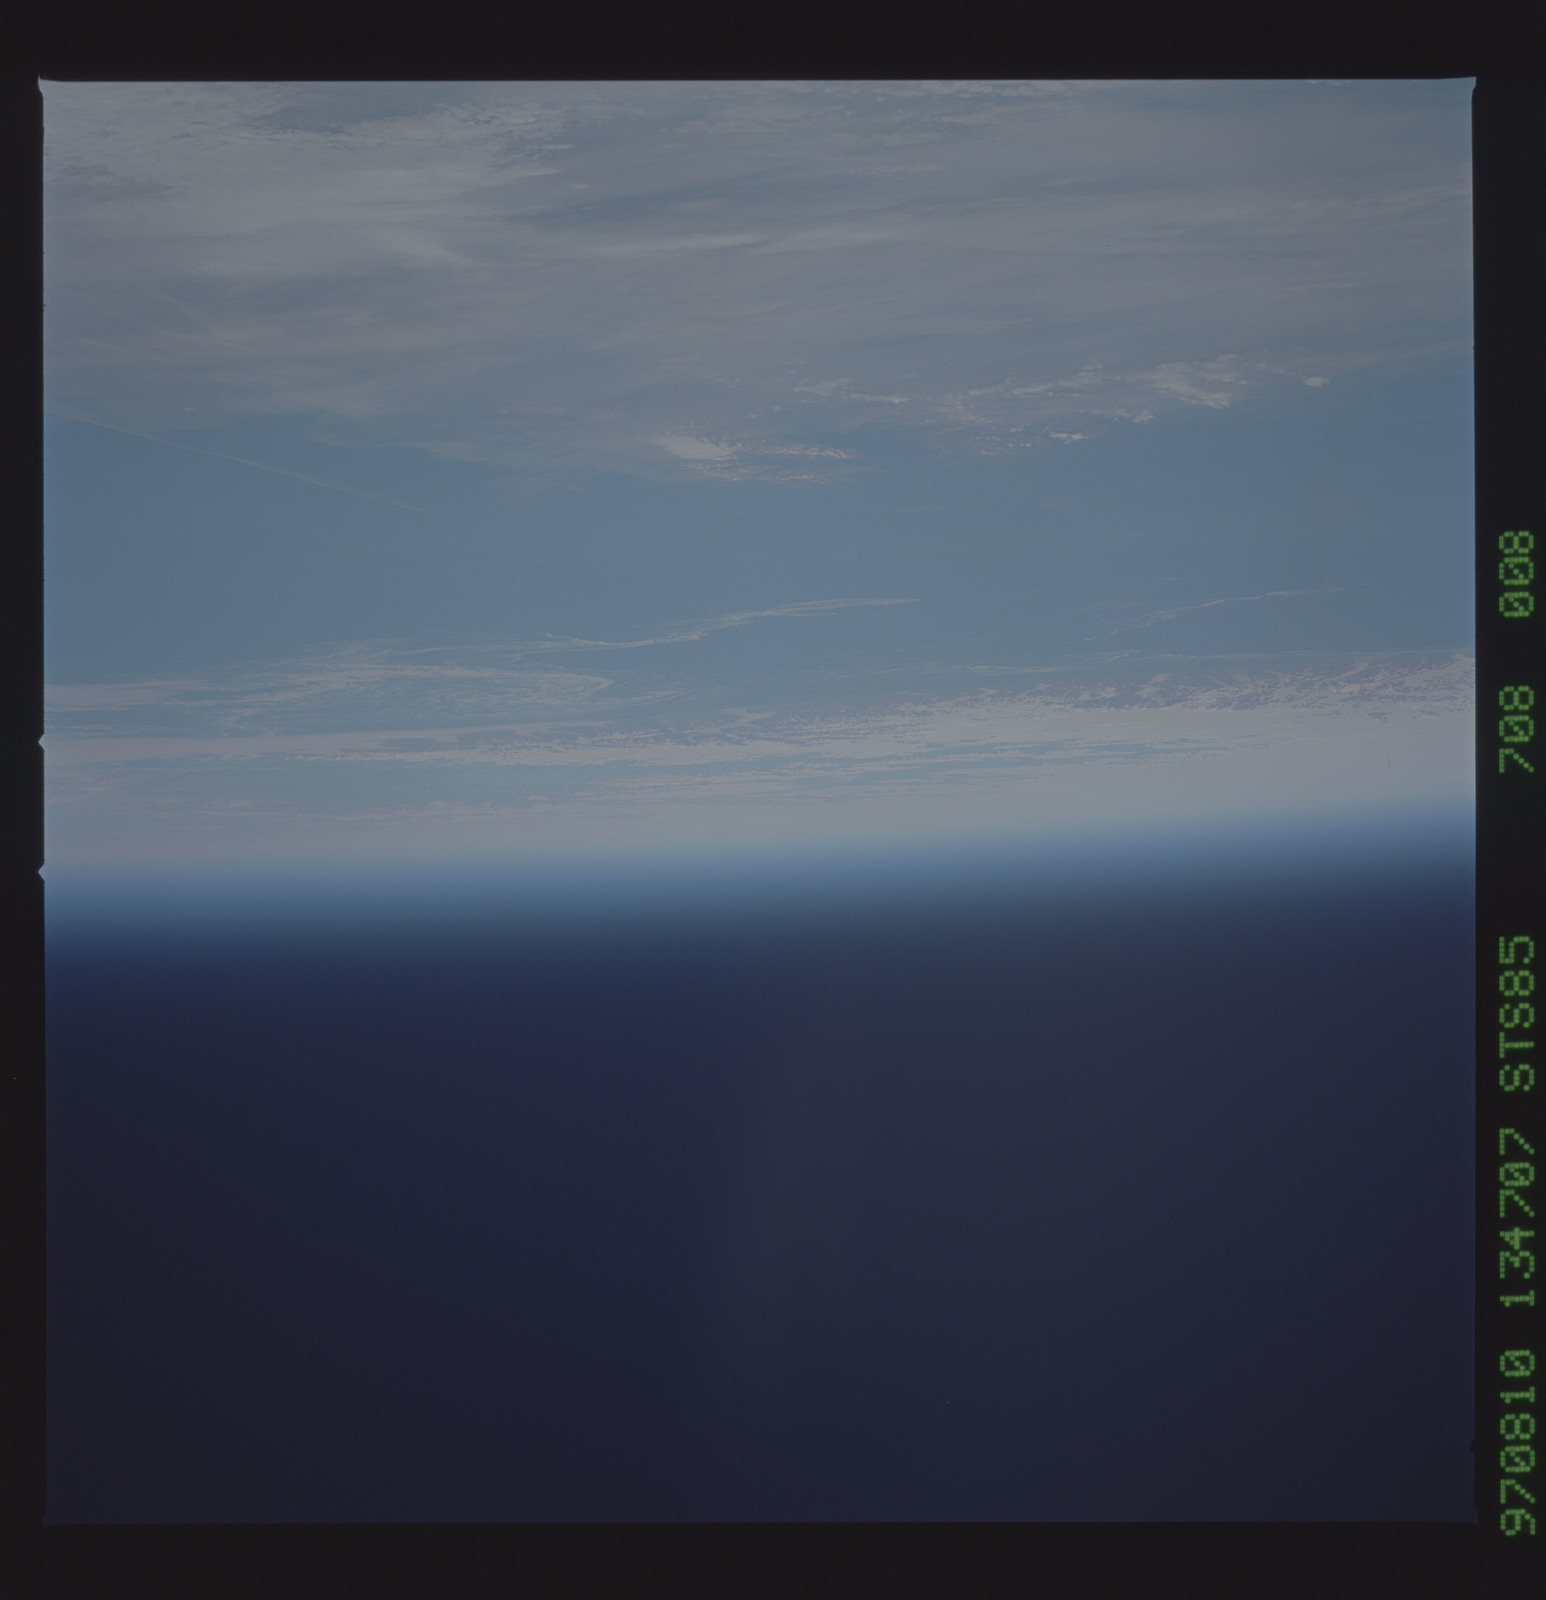 STS085-708-008 - STS-085 - Earth observations taken from orbiter Discovery during STS-85 mission